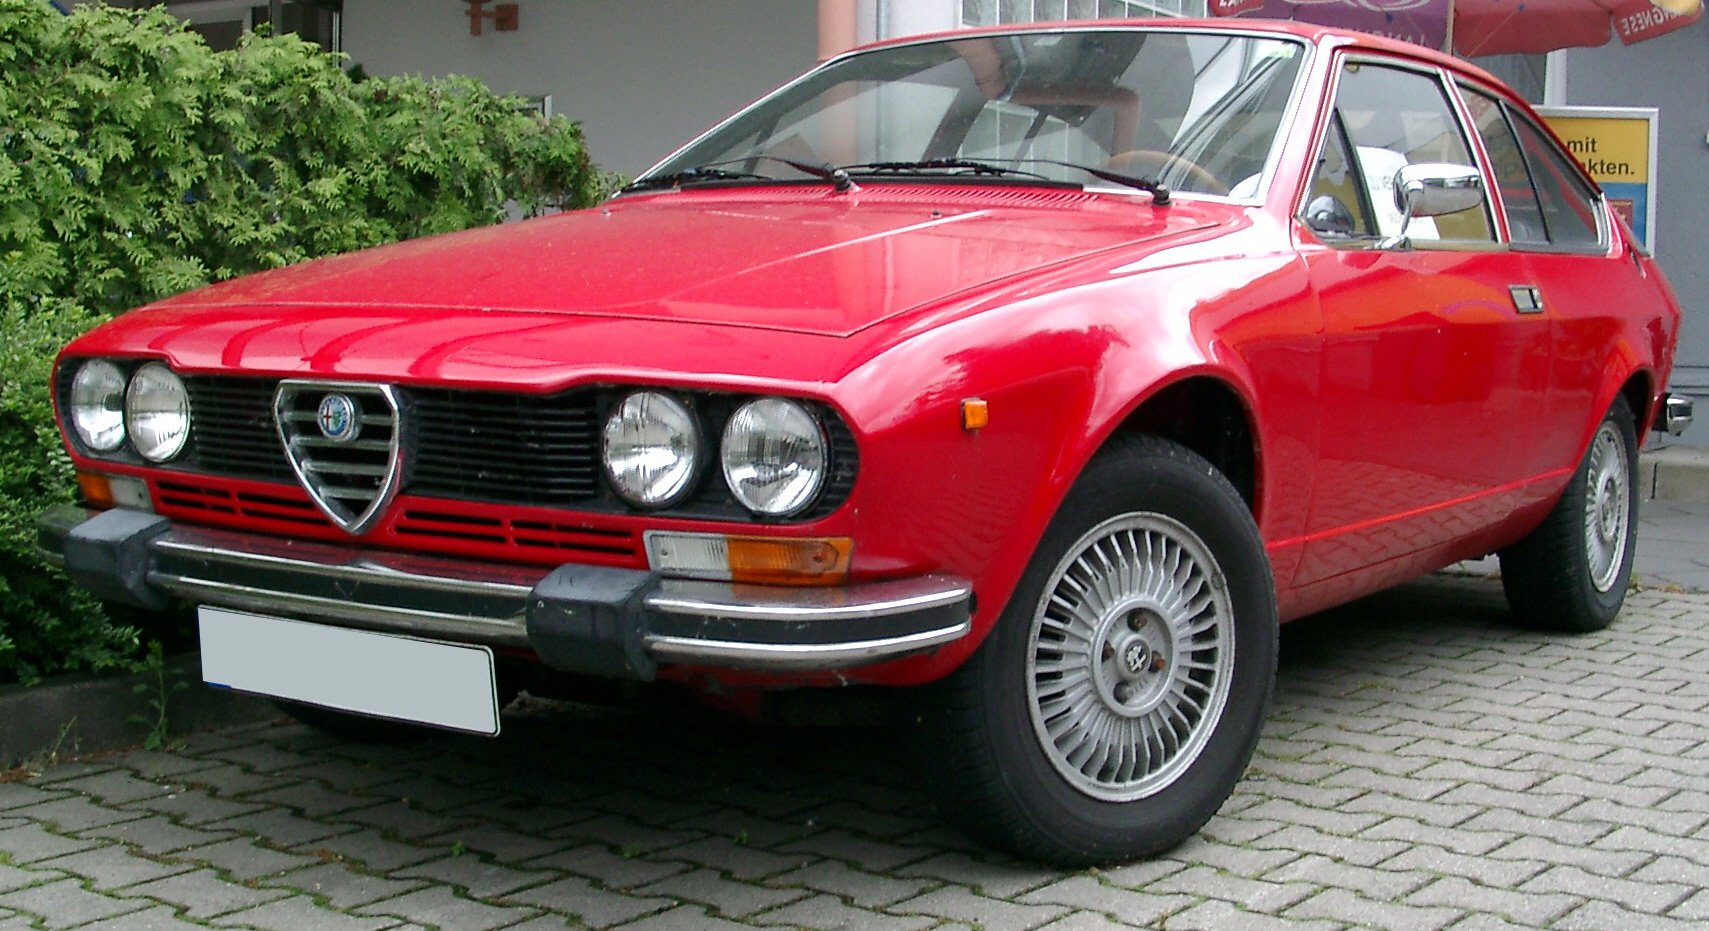 Cars alfa romeo gta coupe #4